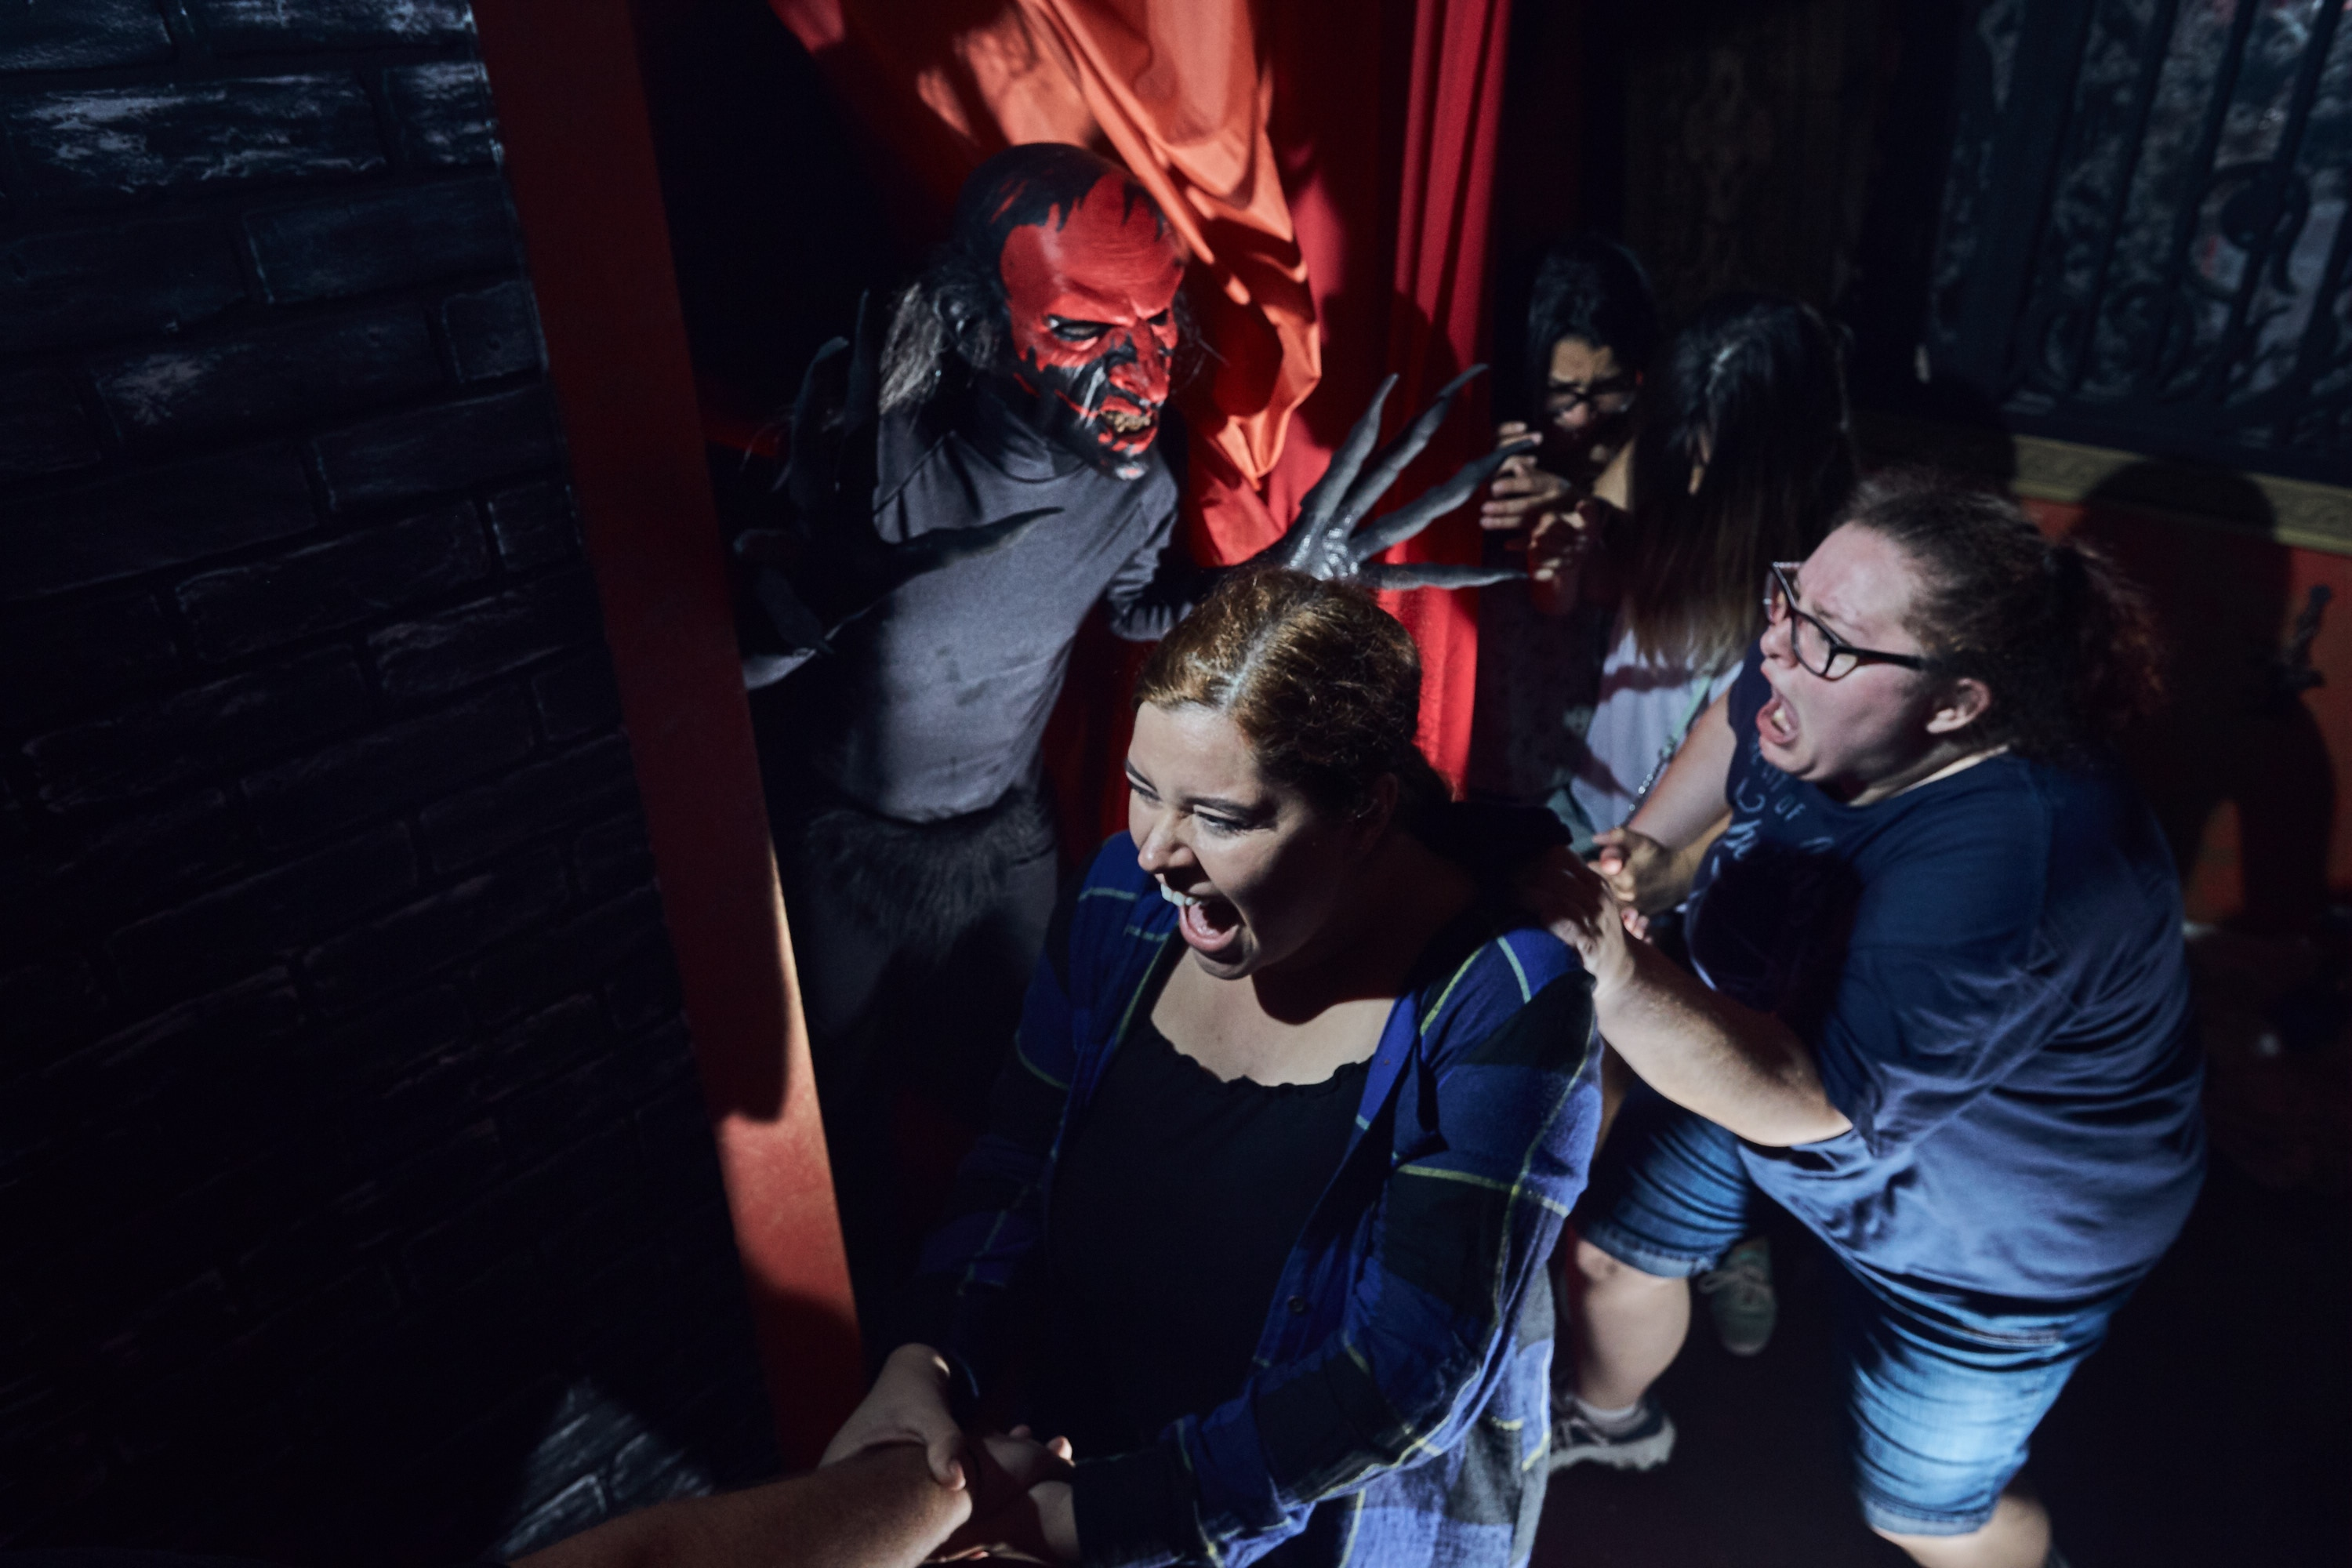 hhn12 The Horrors of Blumhouse - Universal Orlando Thrills and Terrifies With Halloween Horror Nights 27